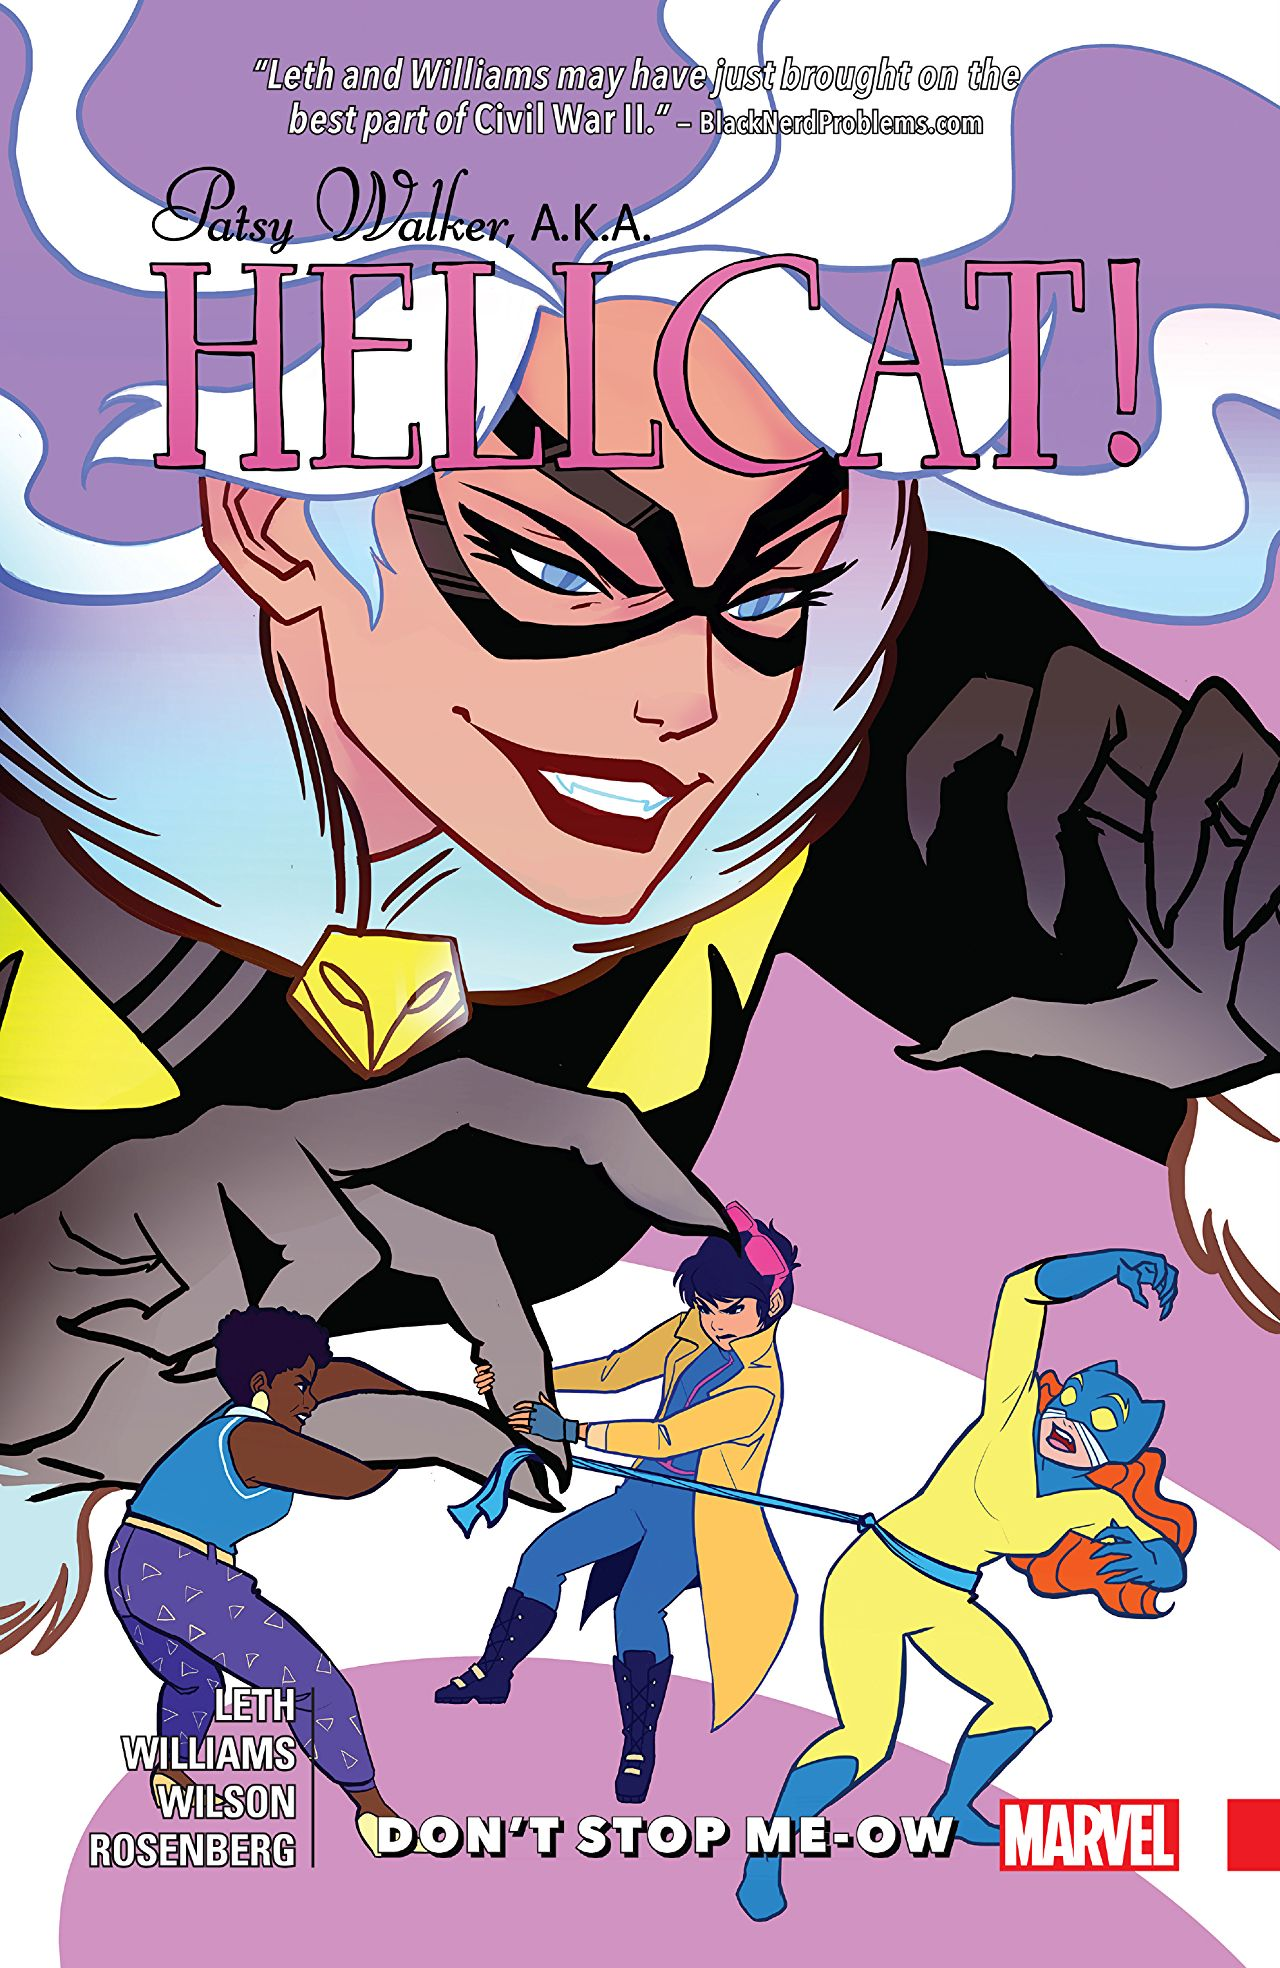 Patsy Walker, A.K.A. Hellcat! Vol 2